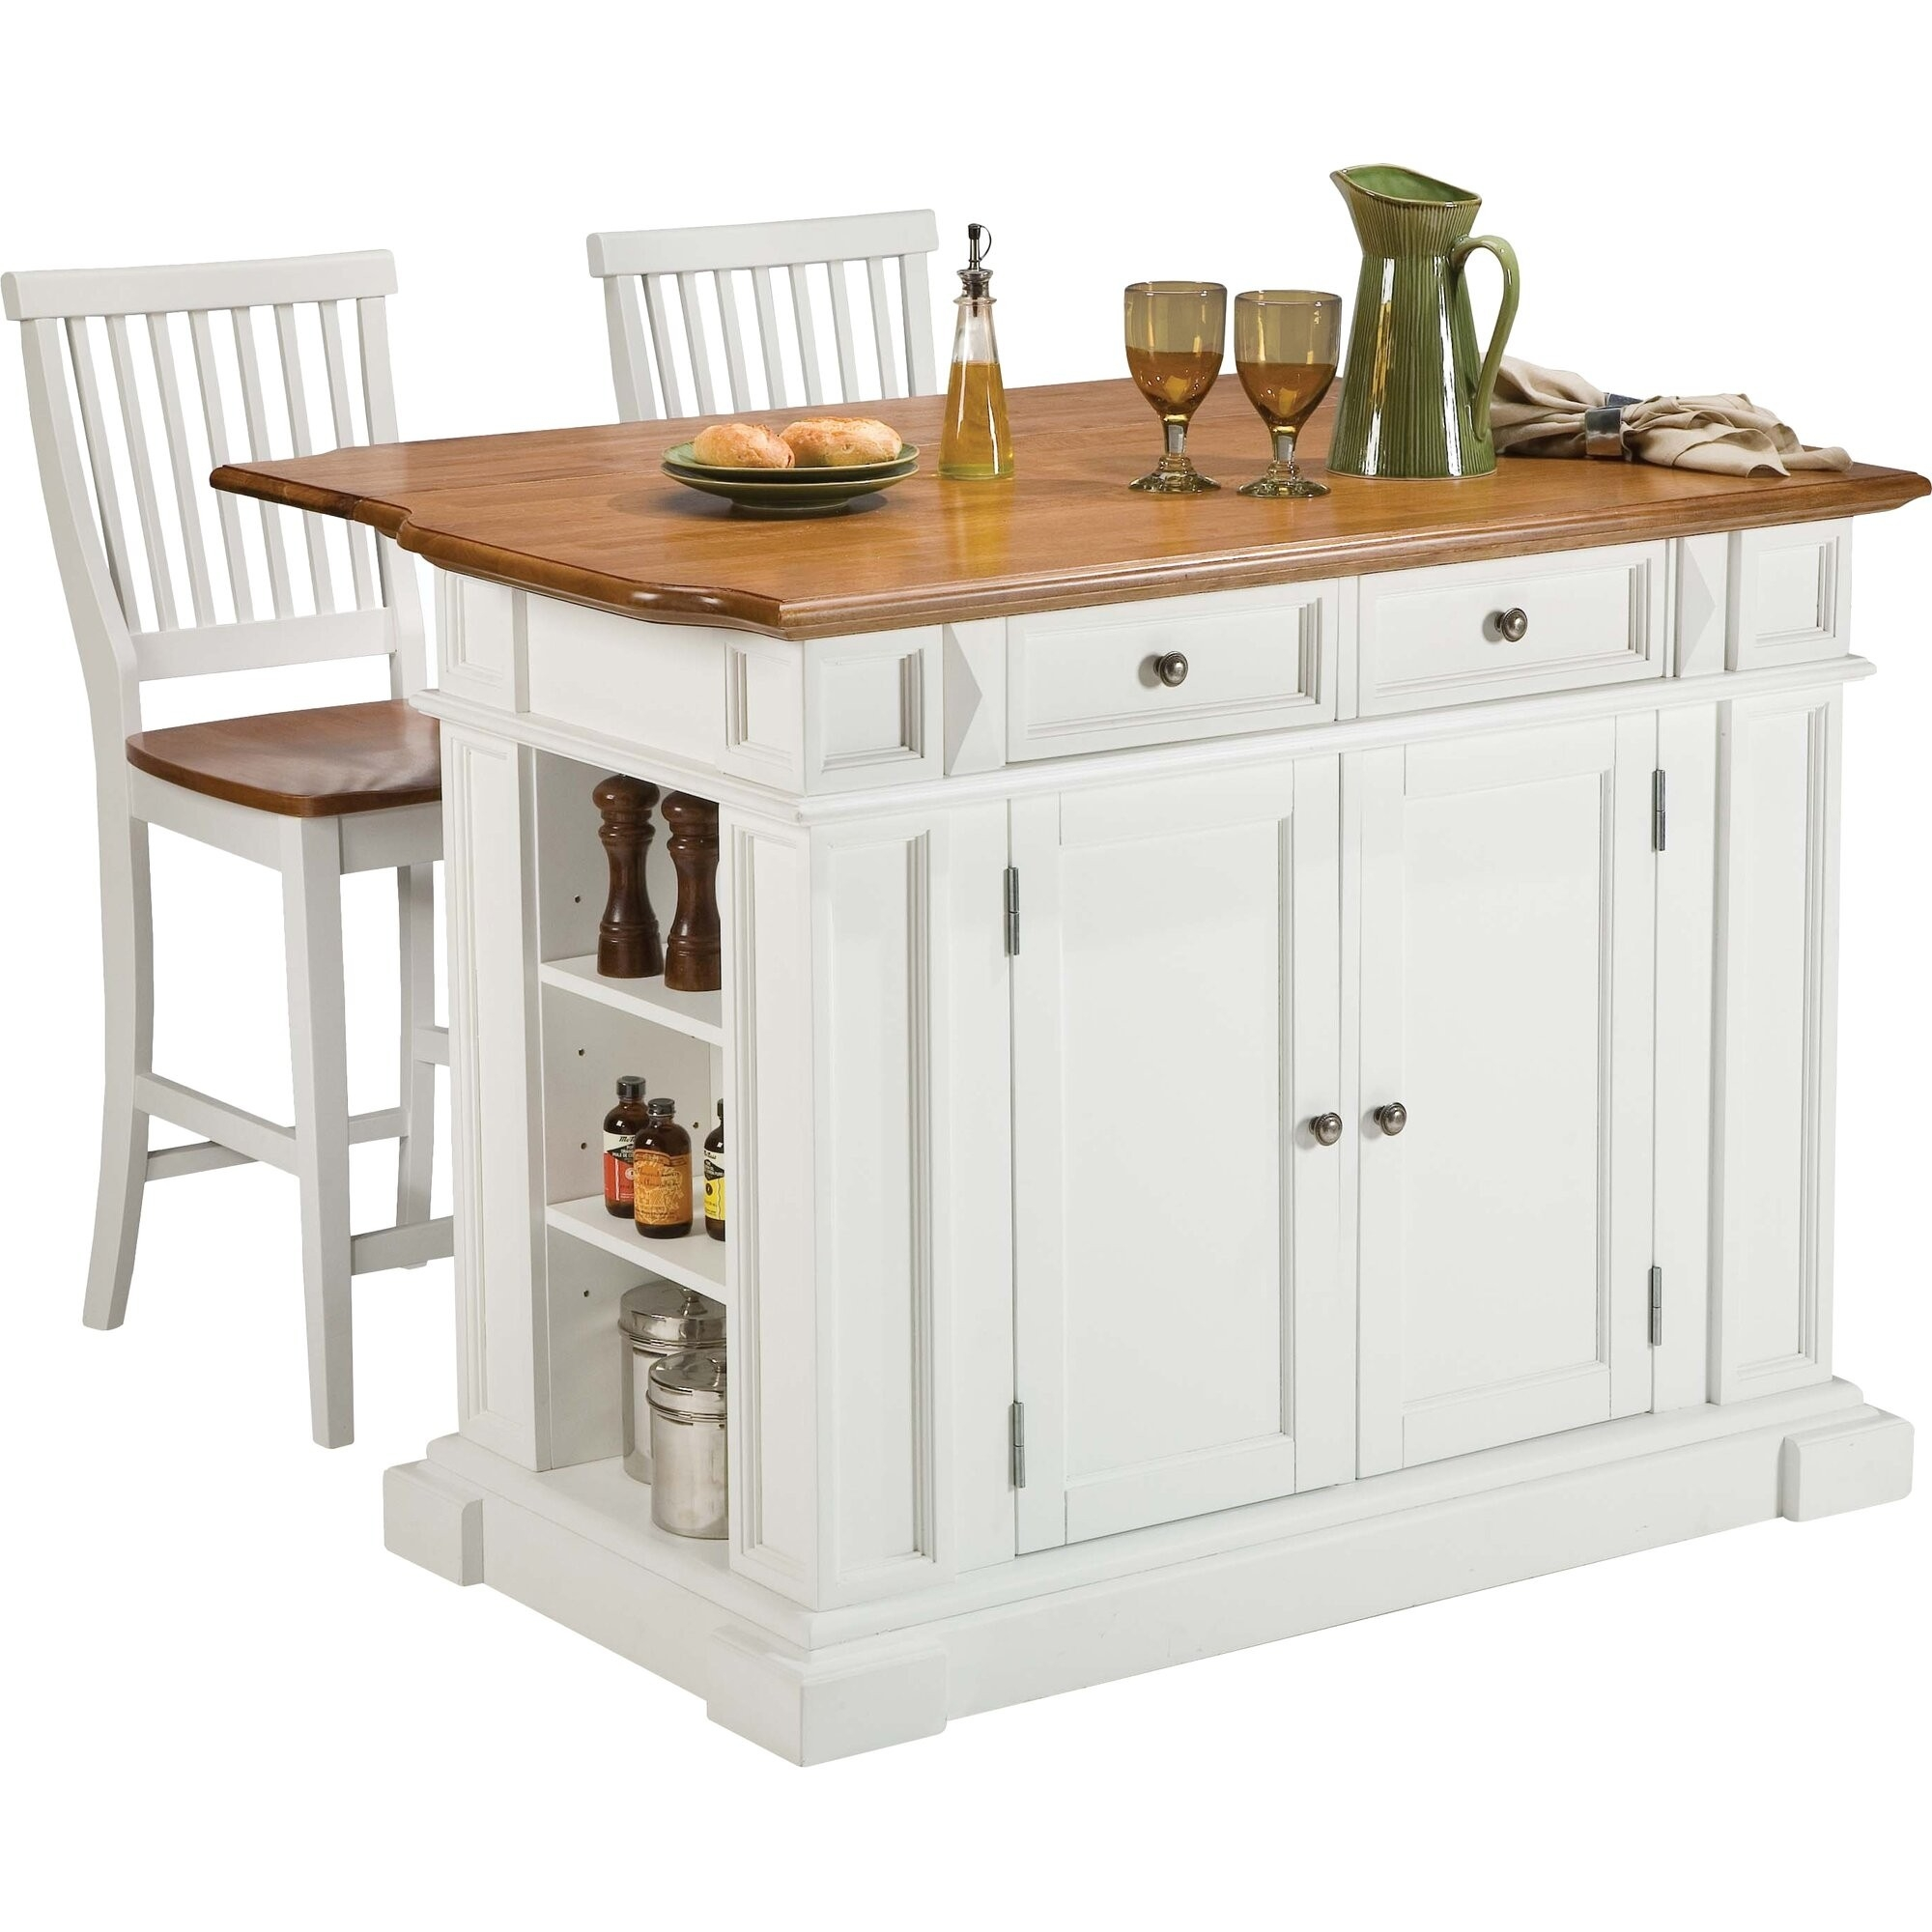 Image of: Portable Kitchen Islands With Breakfast Bar For 2020 Ideas On Foter